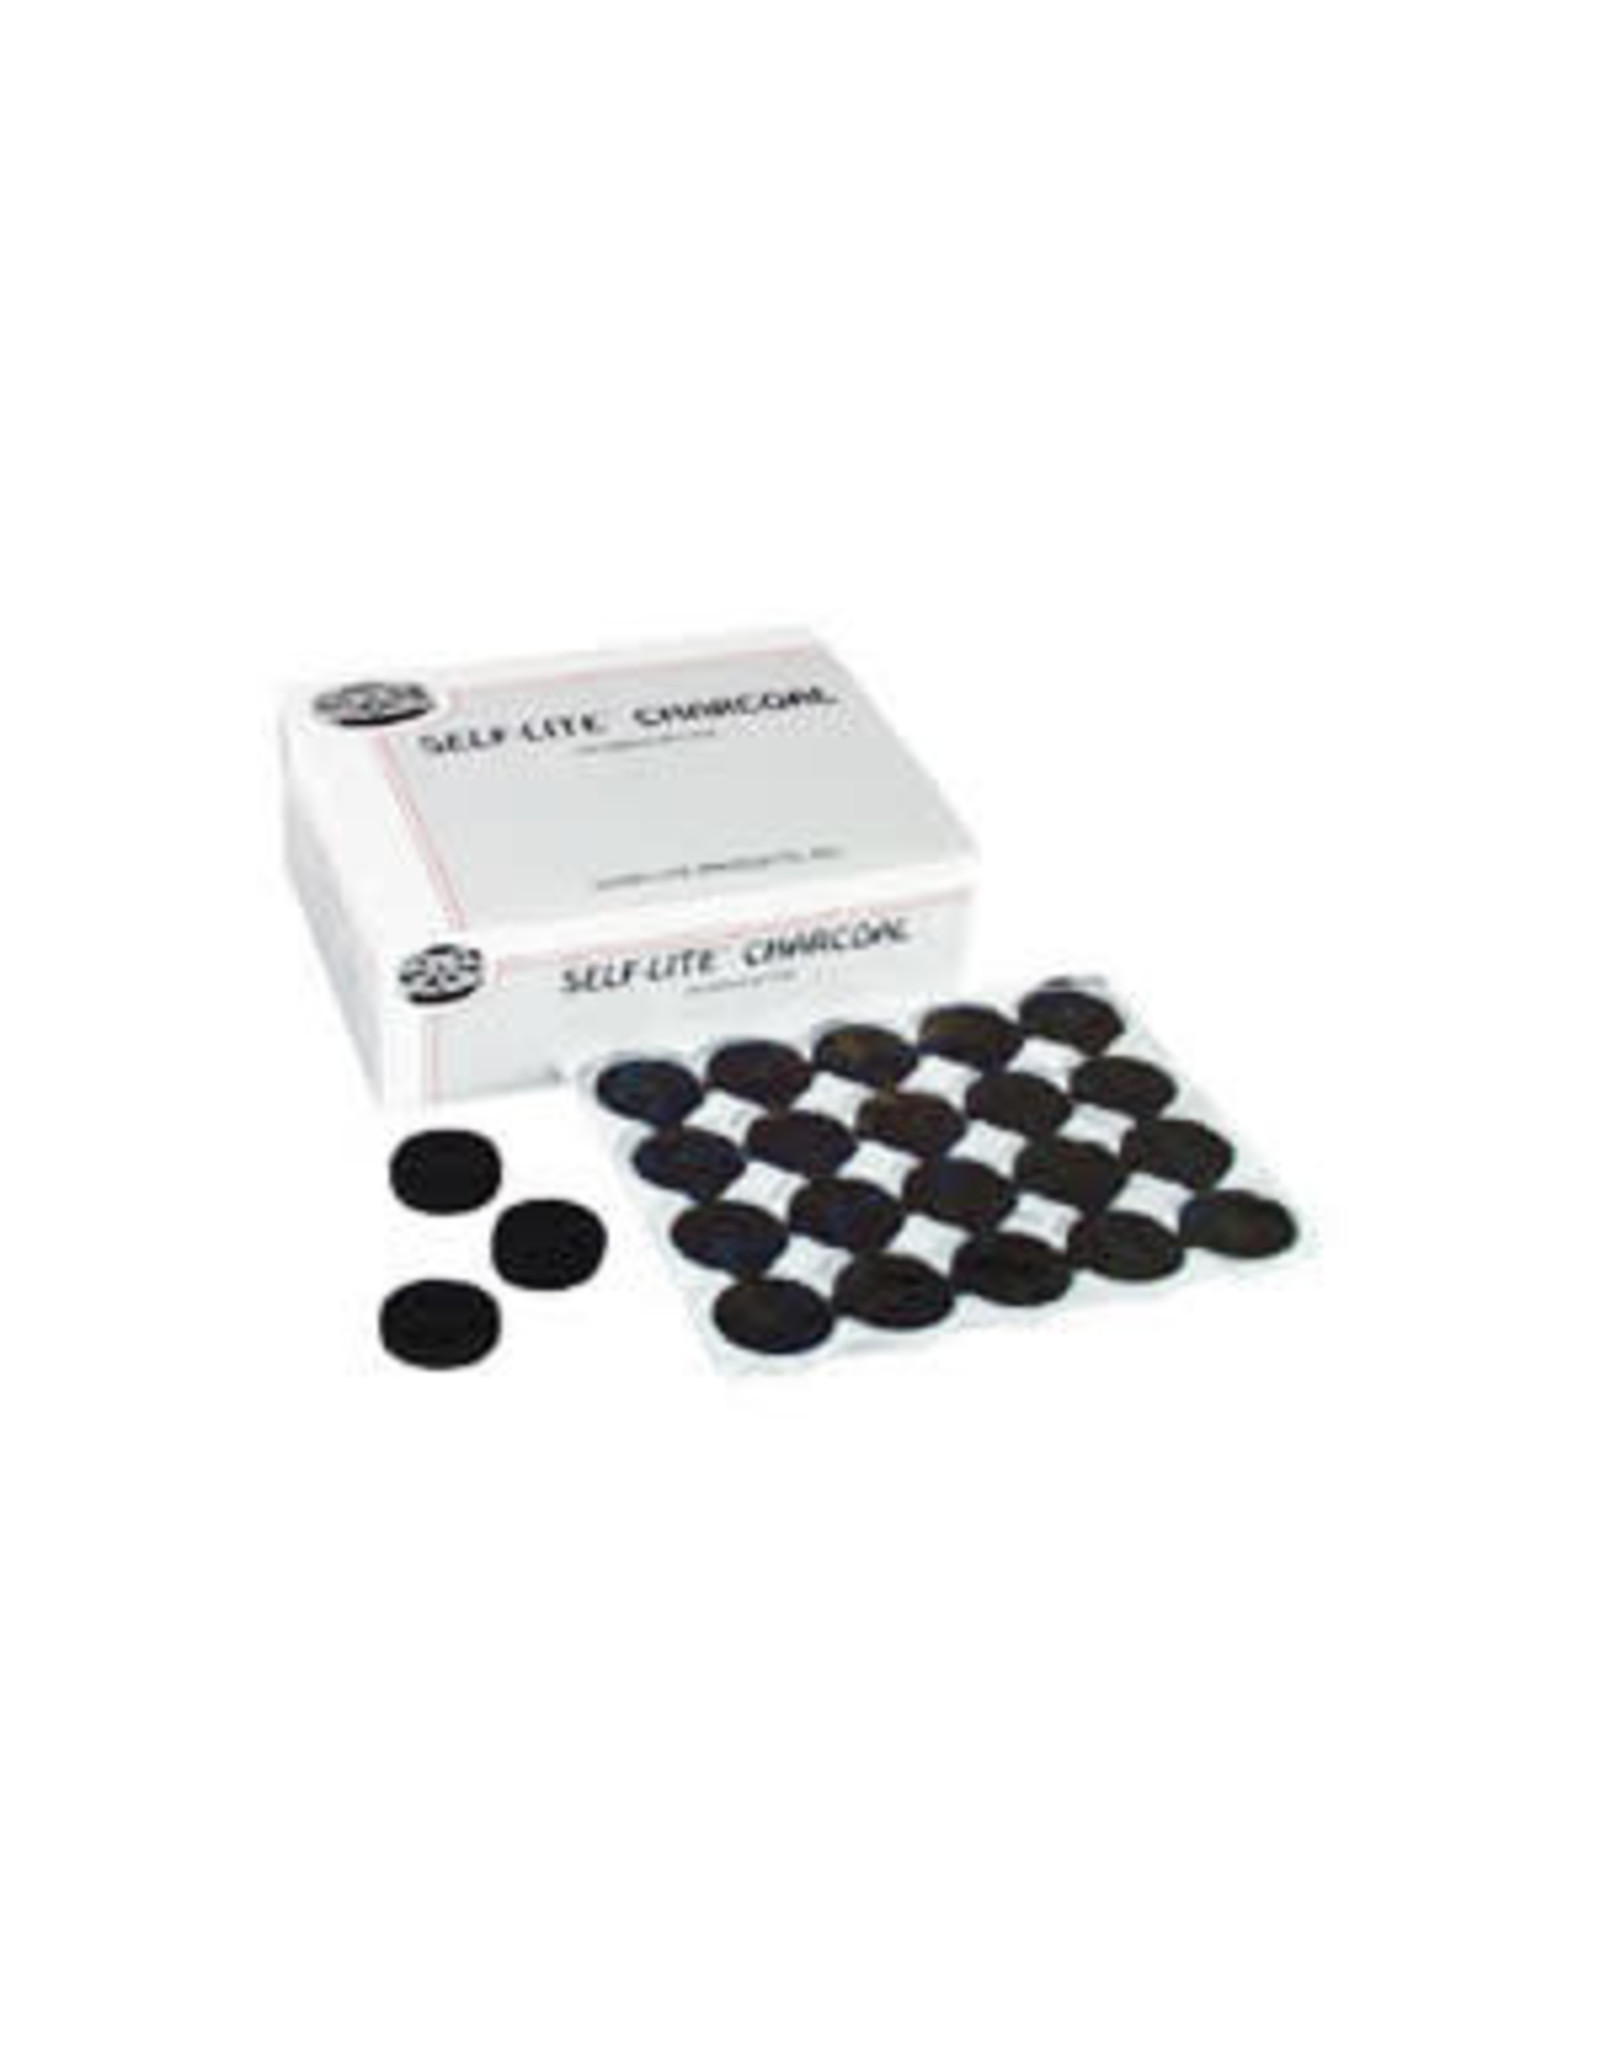 Self-Lite Charcoal for Incense (100/box)